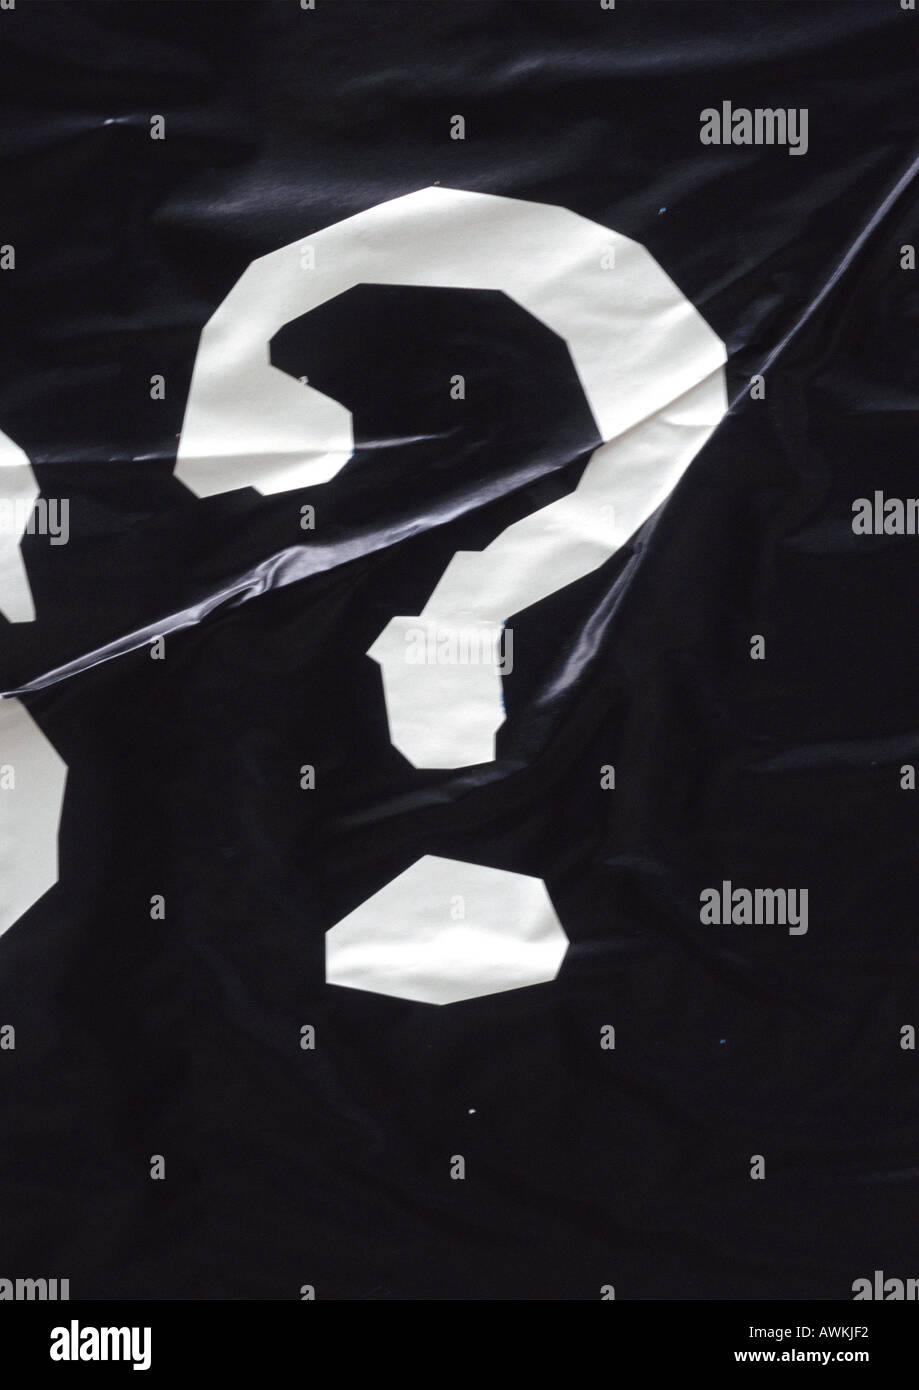 ? text, printed in white on wrinkled black surface - Stock Image